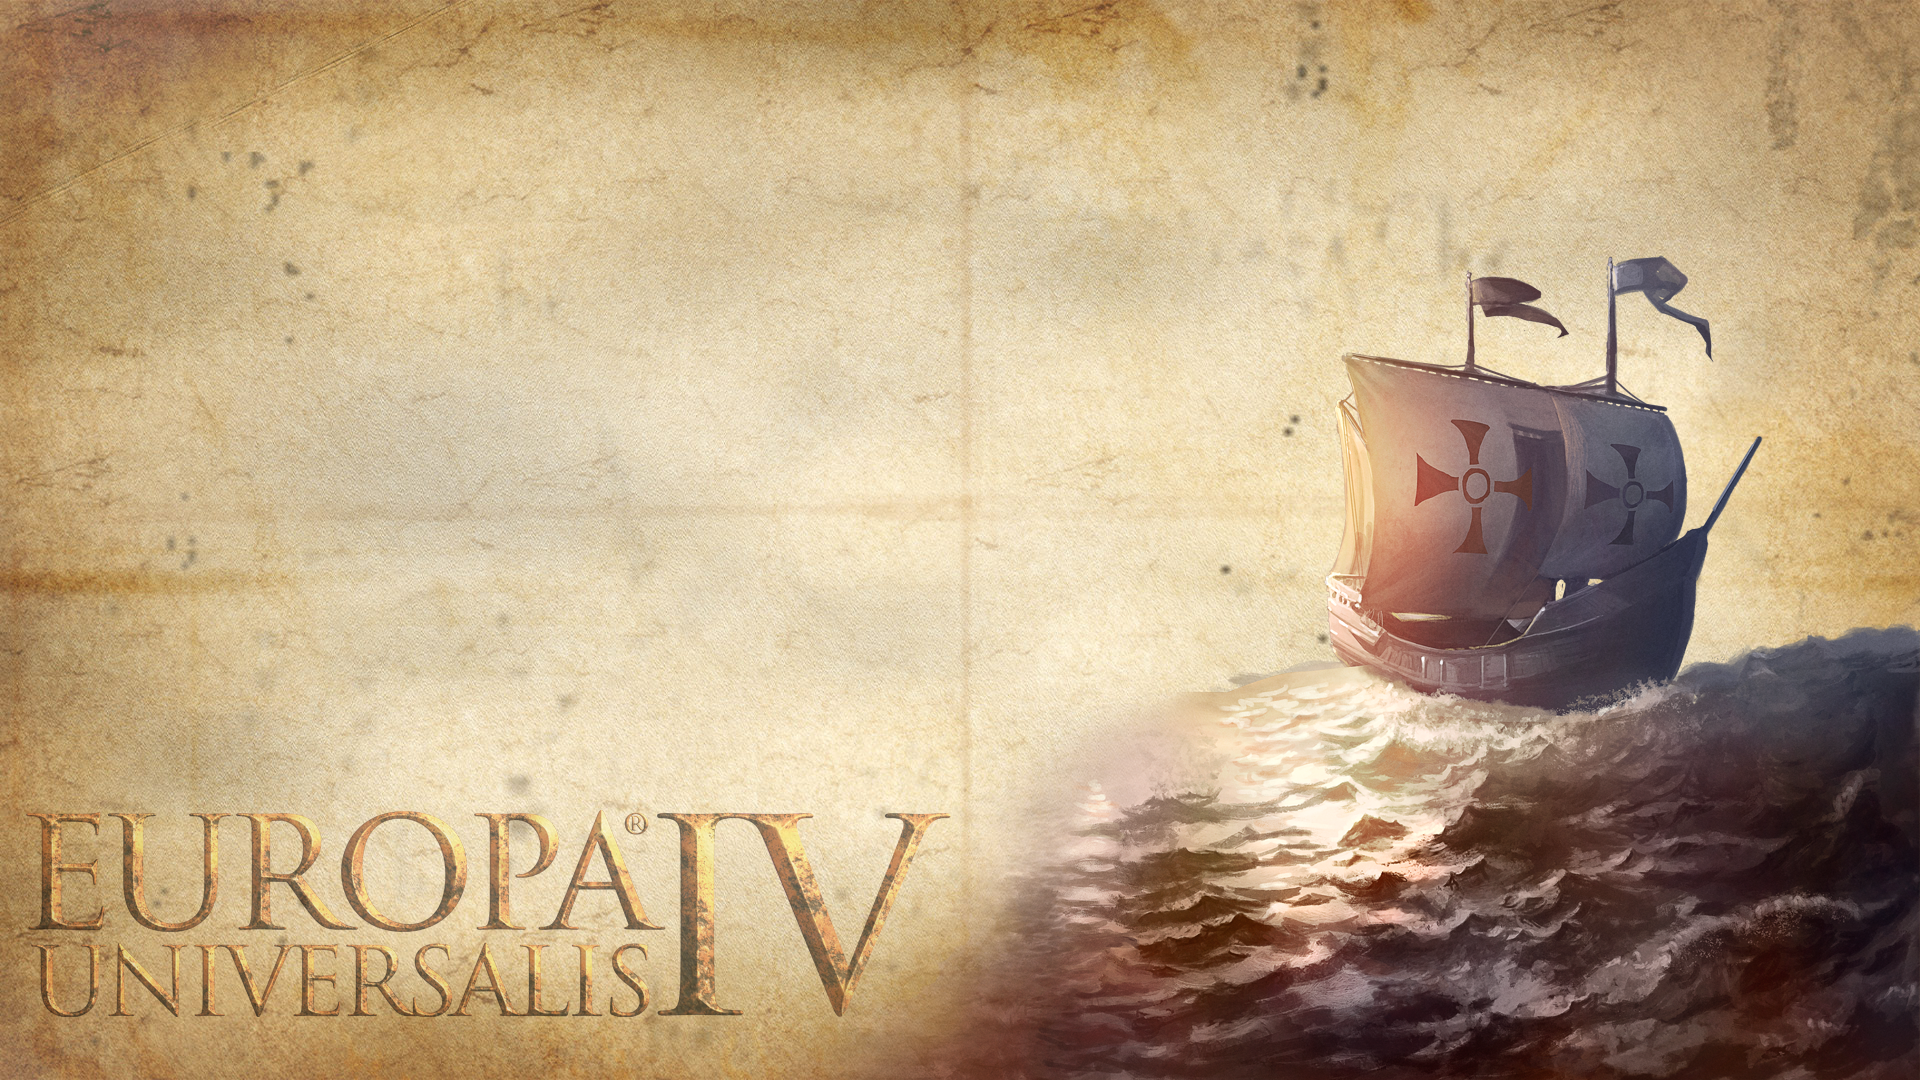 Europa Universalis IV telecharger gratuit de PC et Torrent